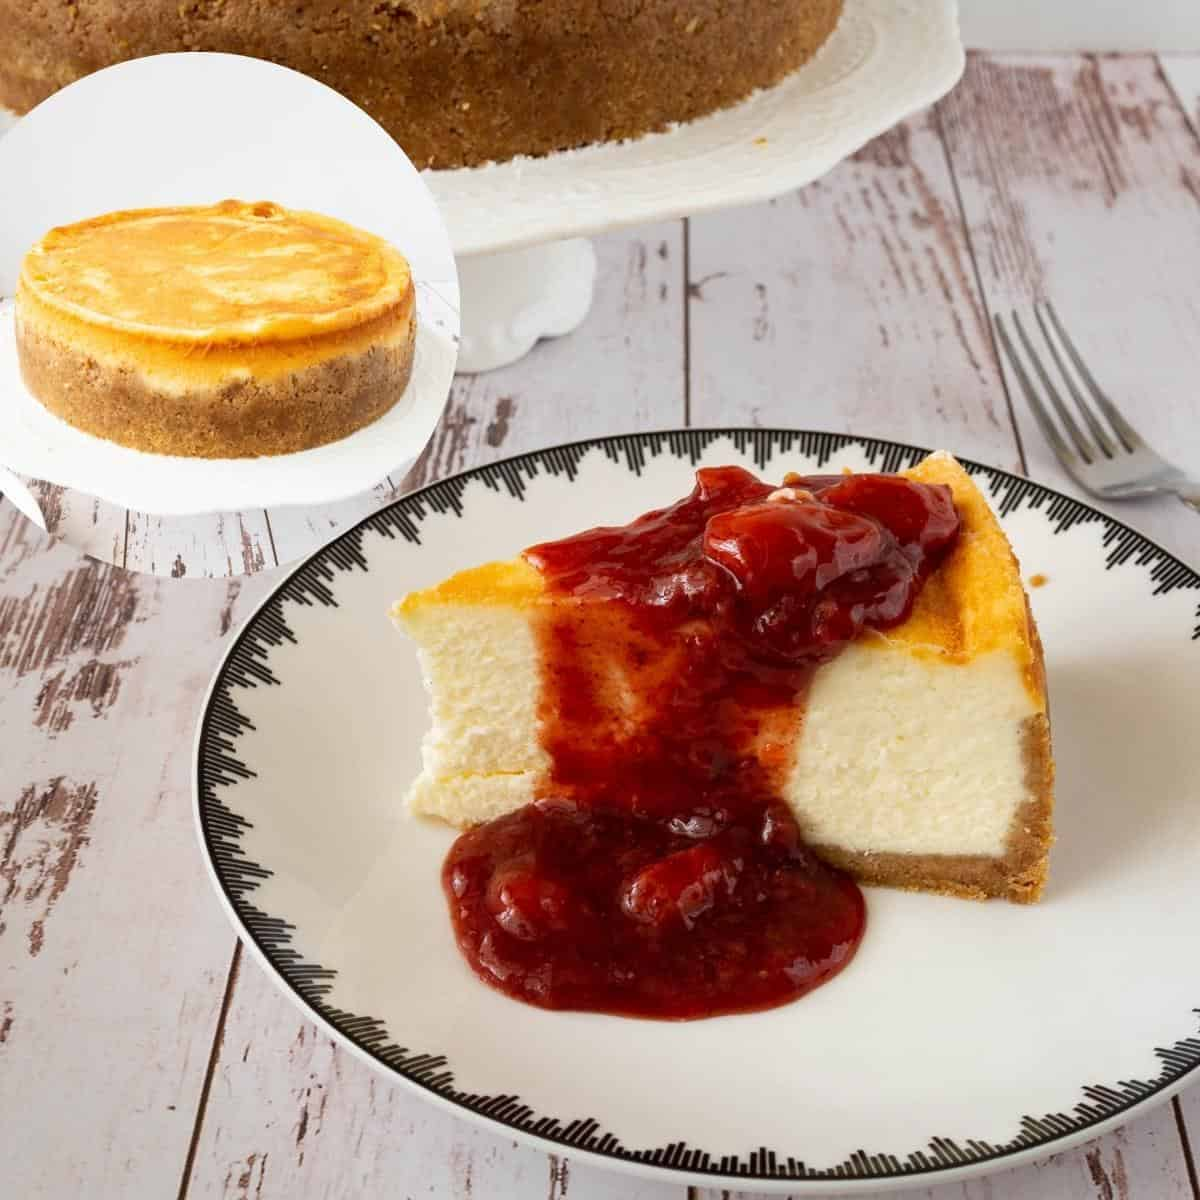 A slice of cheesecake topped with strawberry filling.